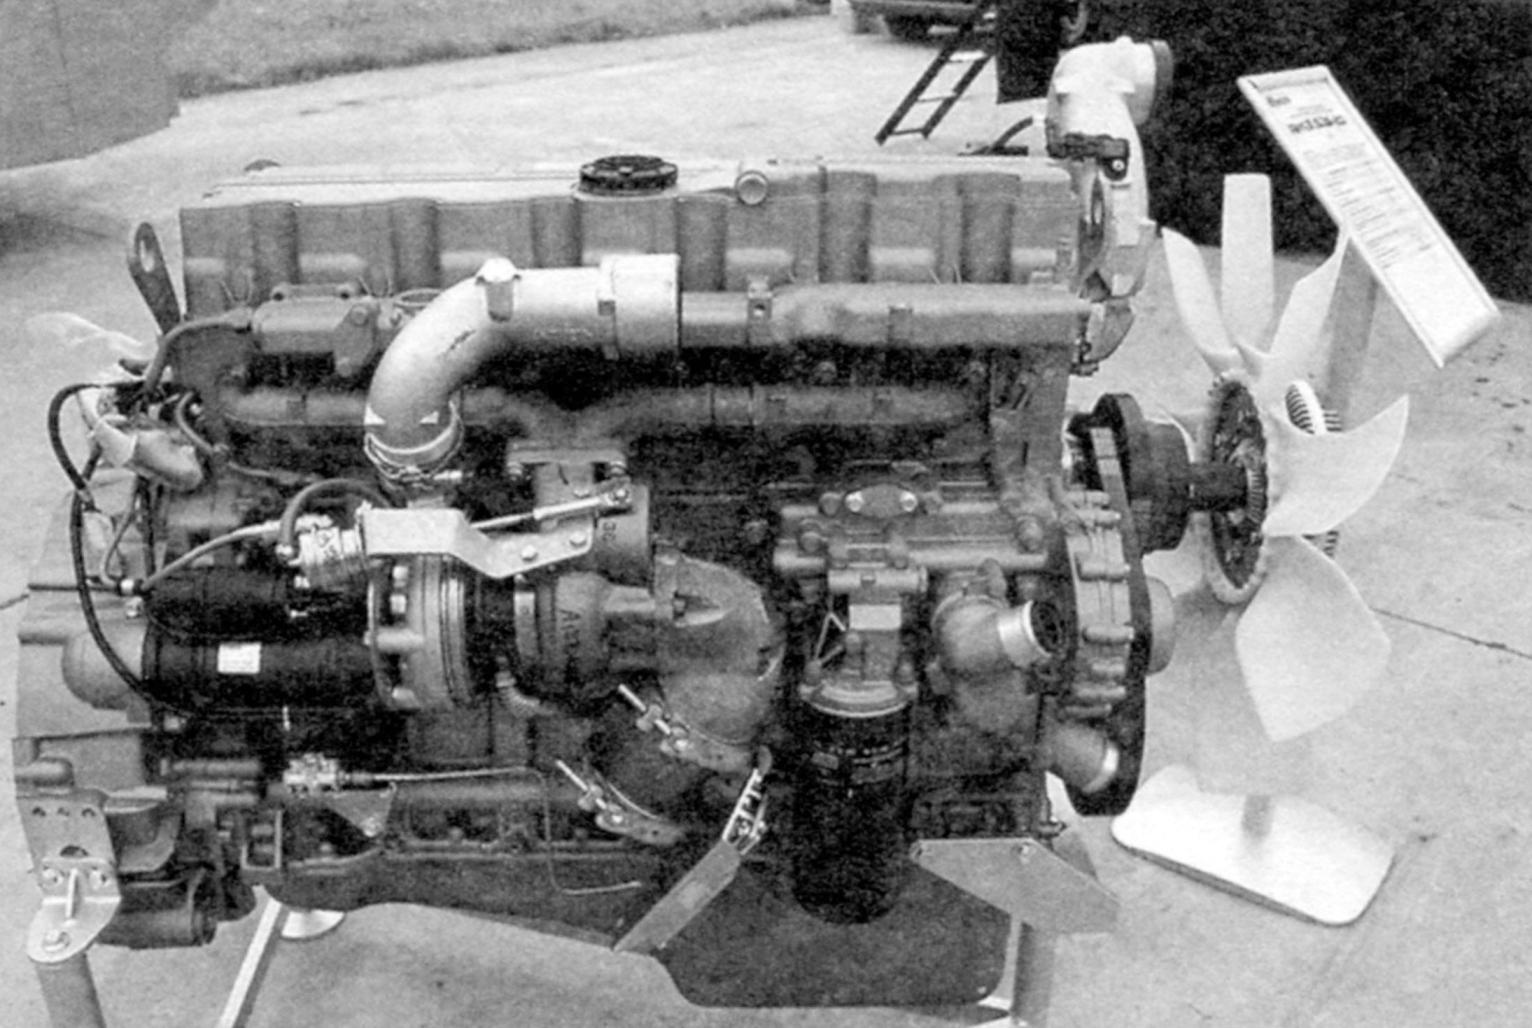 Diesel 6-cylinder engine yaz-536 turbo Yaroslavl motor plant mounted on the armored car. Power - 312 HP, weight - 640 kg, the economic norm EURO-4